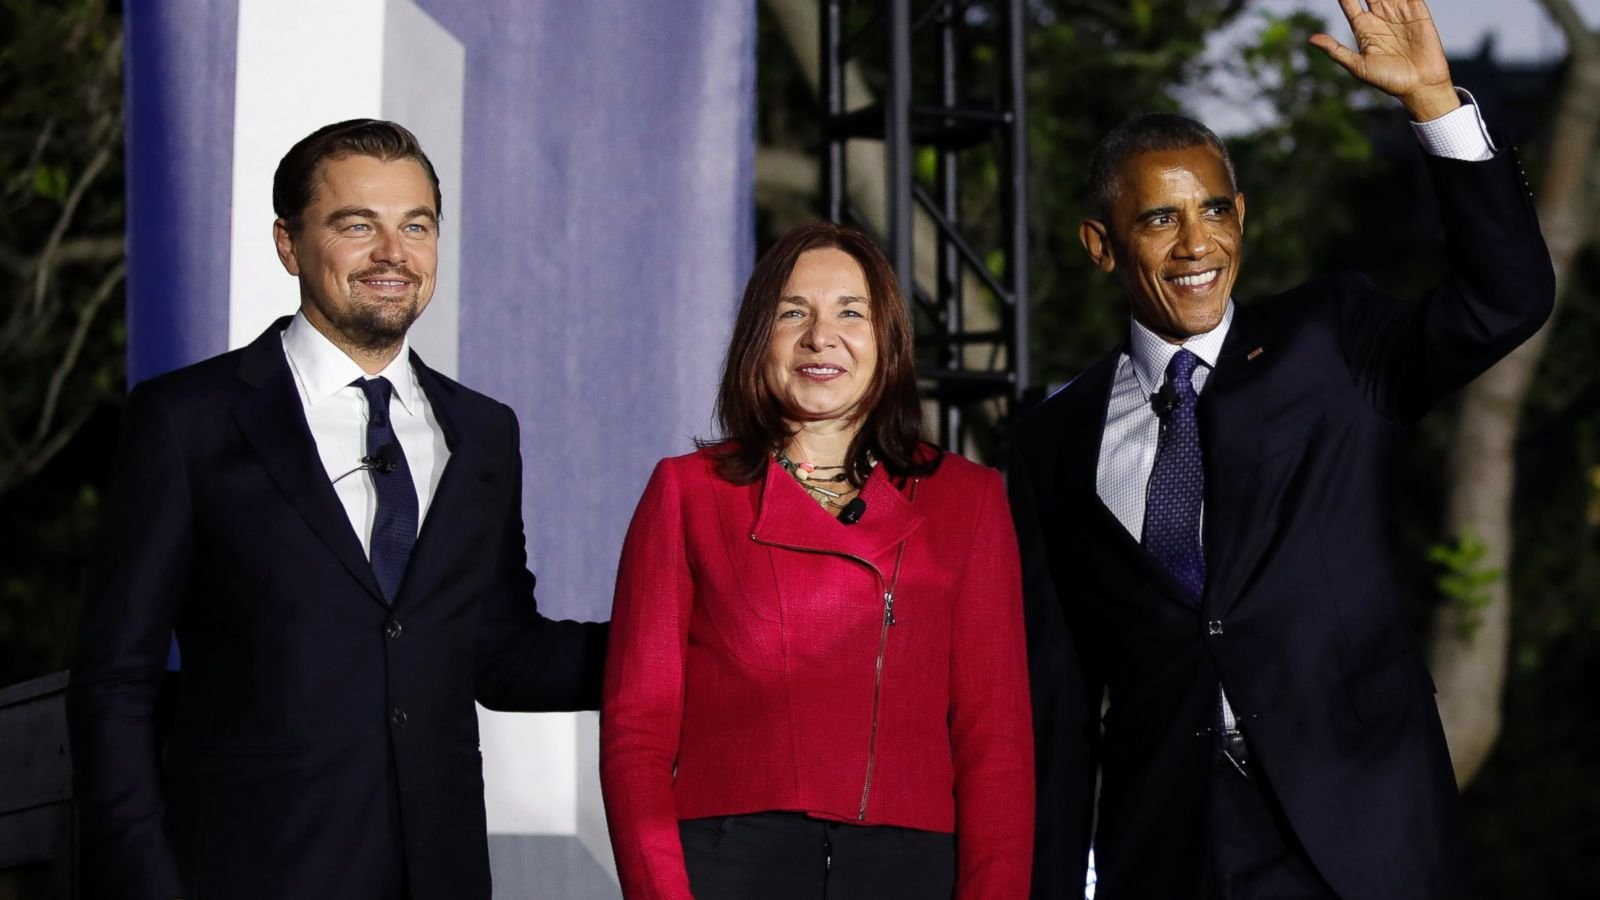 Obama and DiCaprio unit over climate change